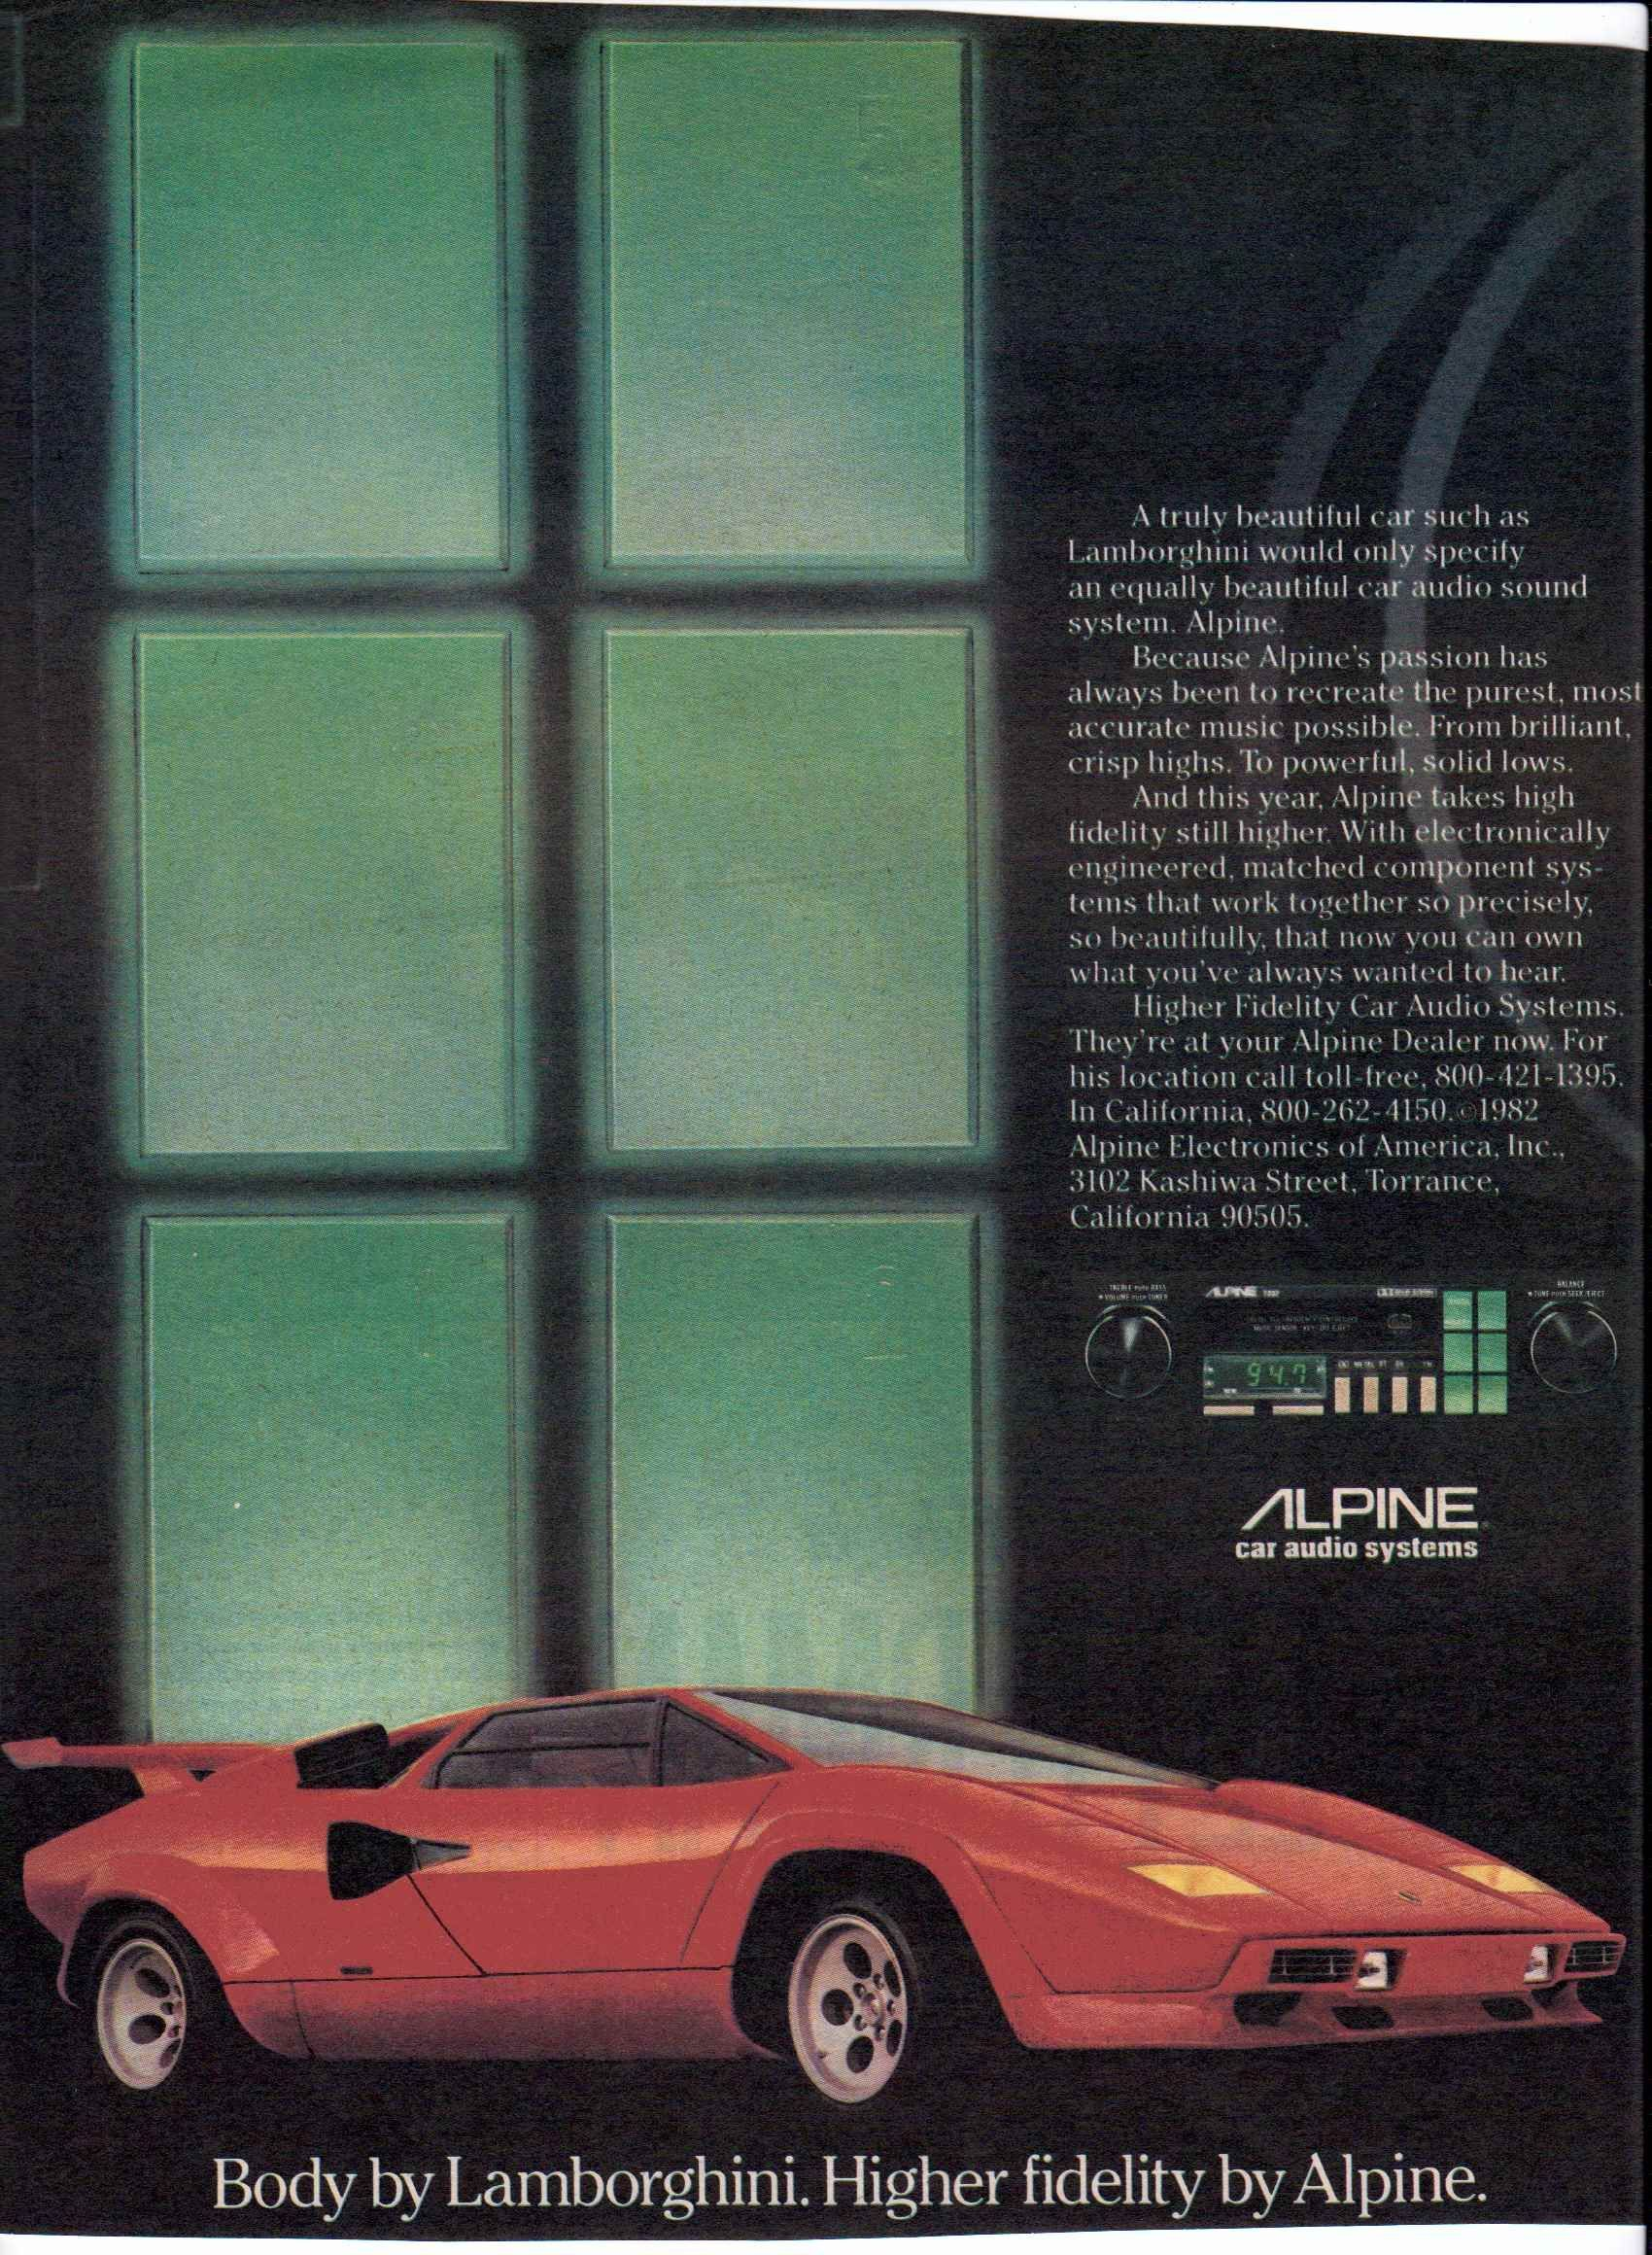 1982 Alpine Cassette Stereo Featuring A Countach Lamborghini In The Advertisement Car Audio Alpine Car Audio Automotive Illustration